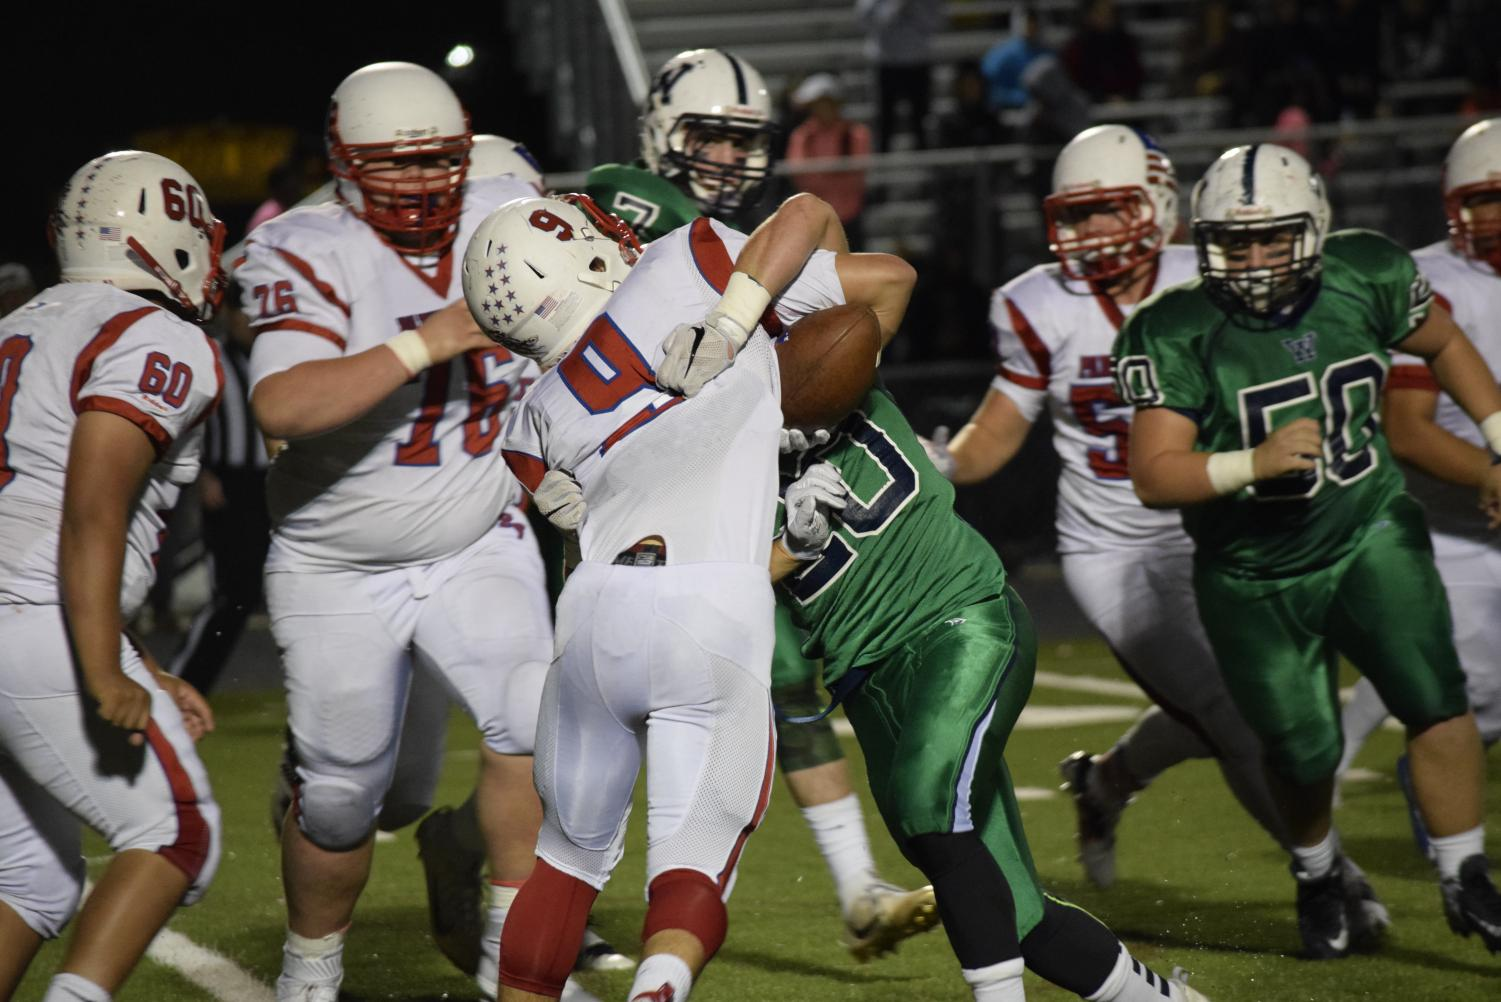 The Park View ball carrier is met by a swarm of Wolverines at the 2016 Park View vs Woodgrove football game.